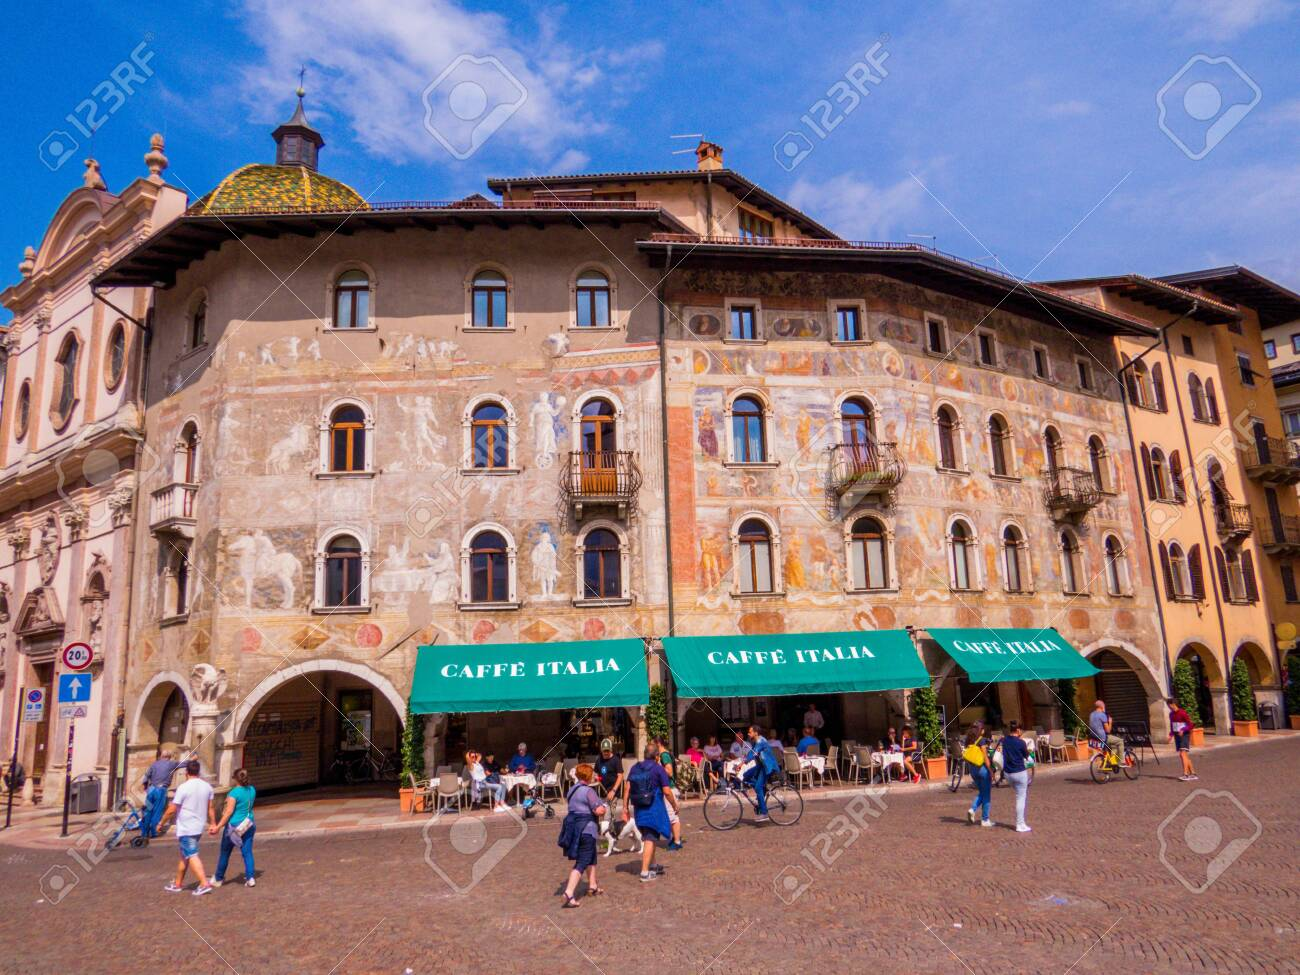 """TRENTO, ITALY - AUGUST 30, 2018: View of the Piazza Duomo and the """"Caffe Italia"""". - 151821163"""